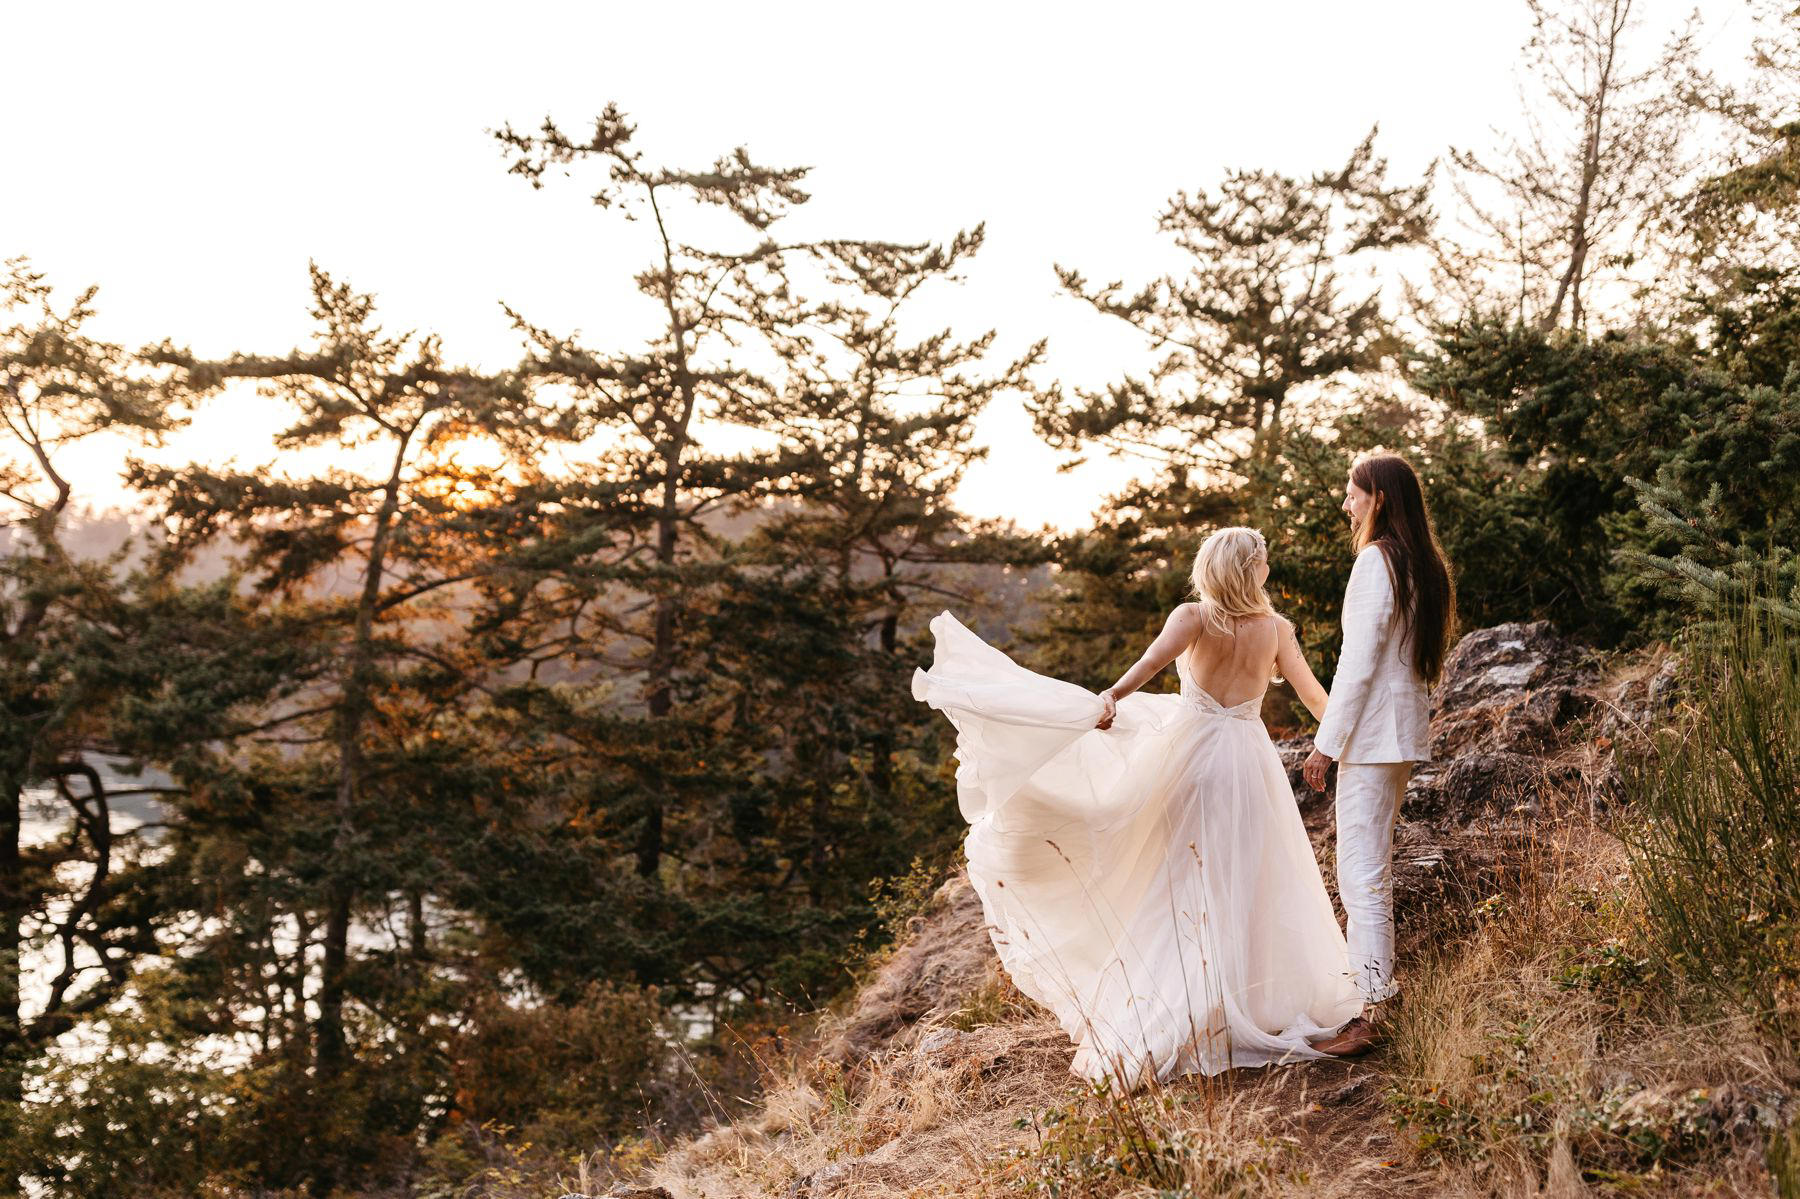 deception pass wedding sunset portrait